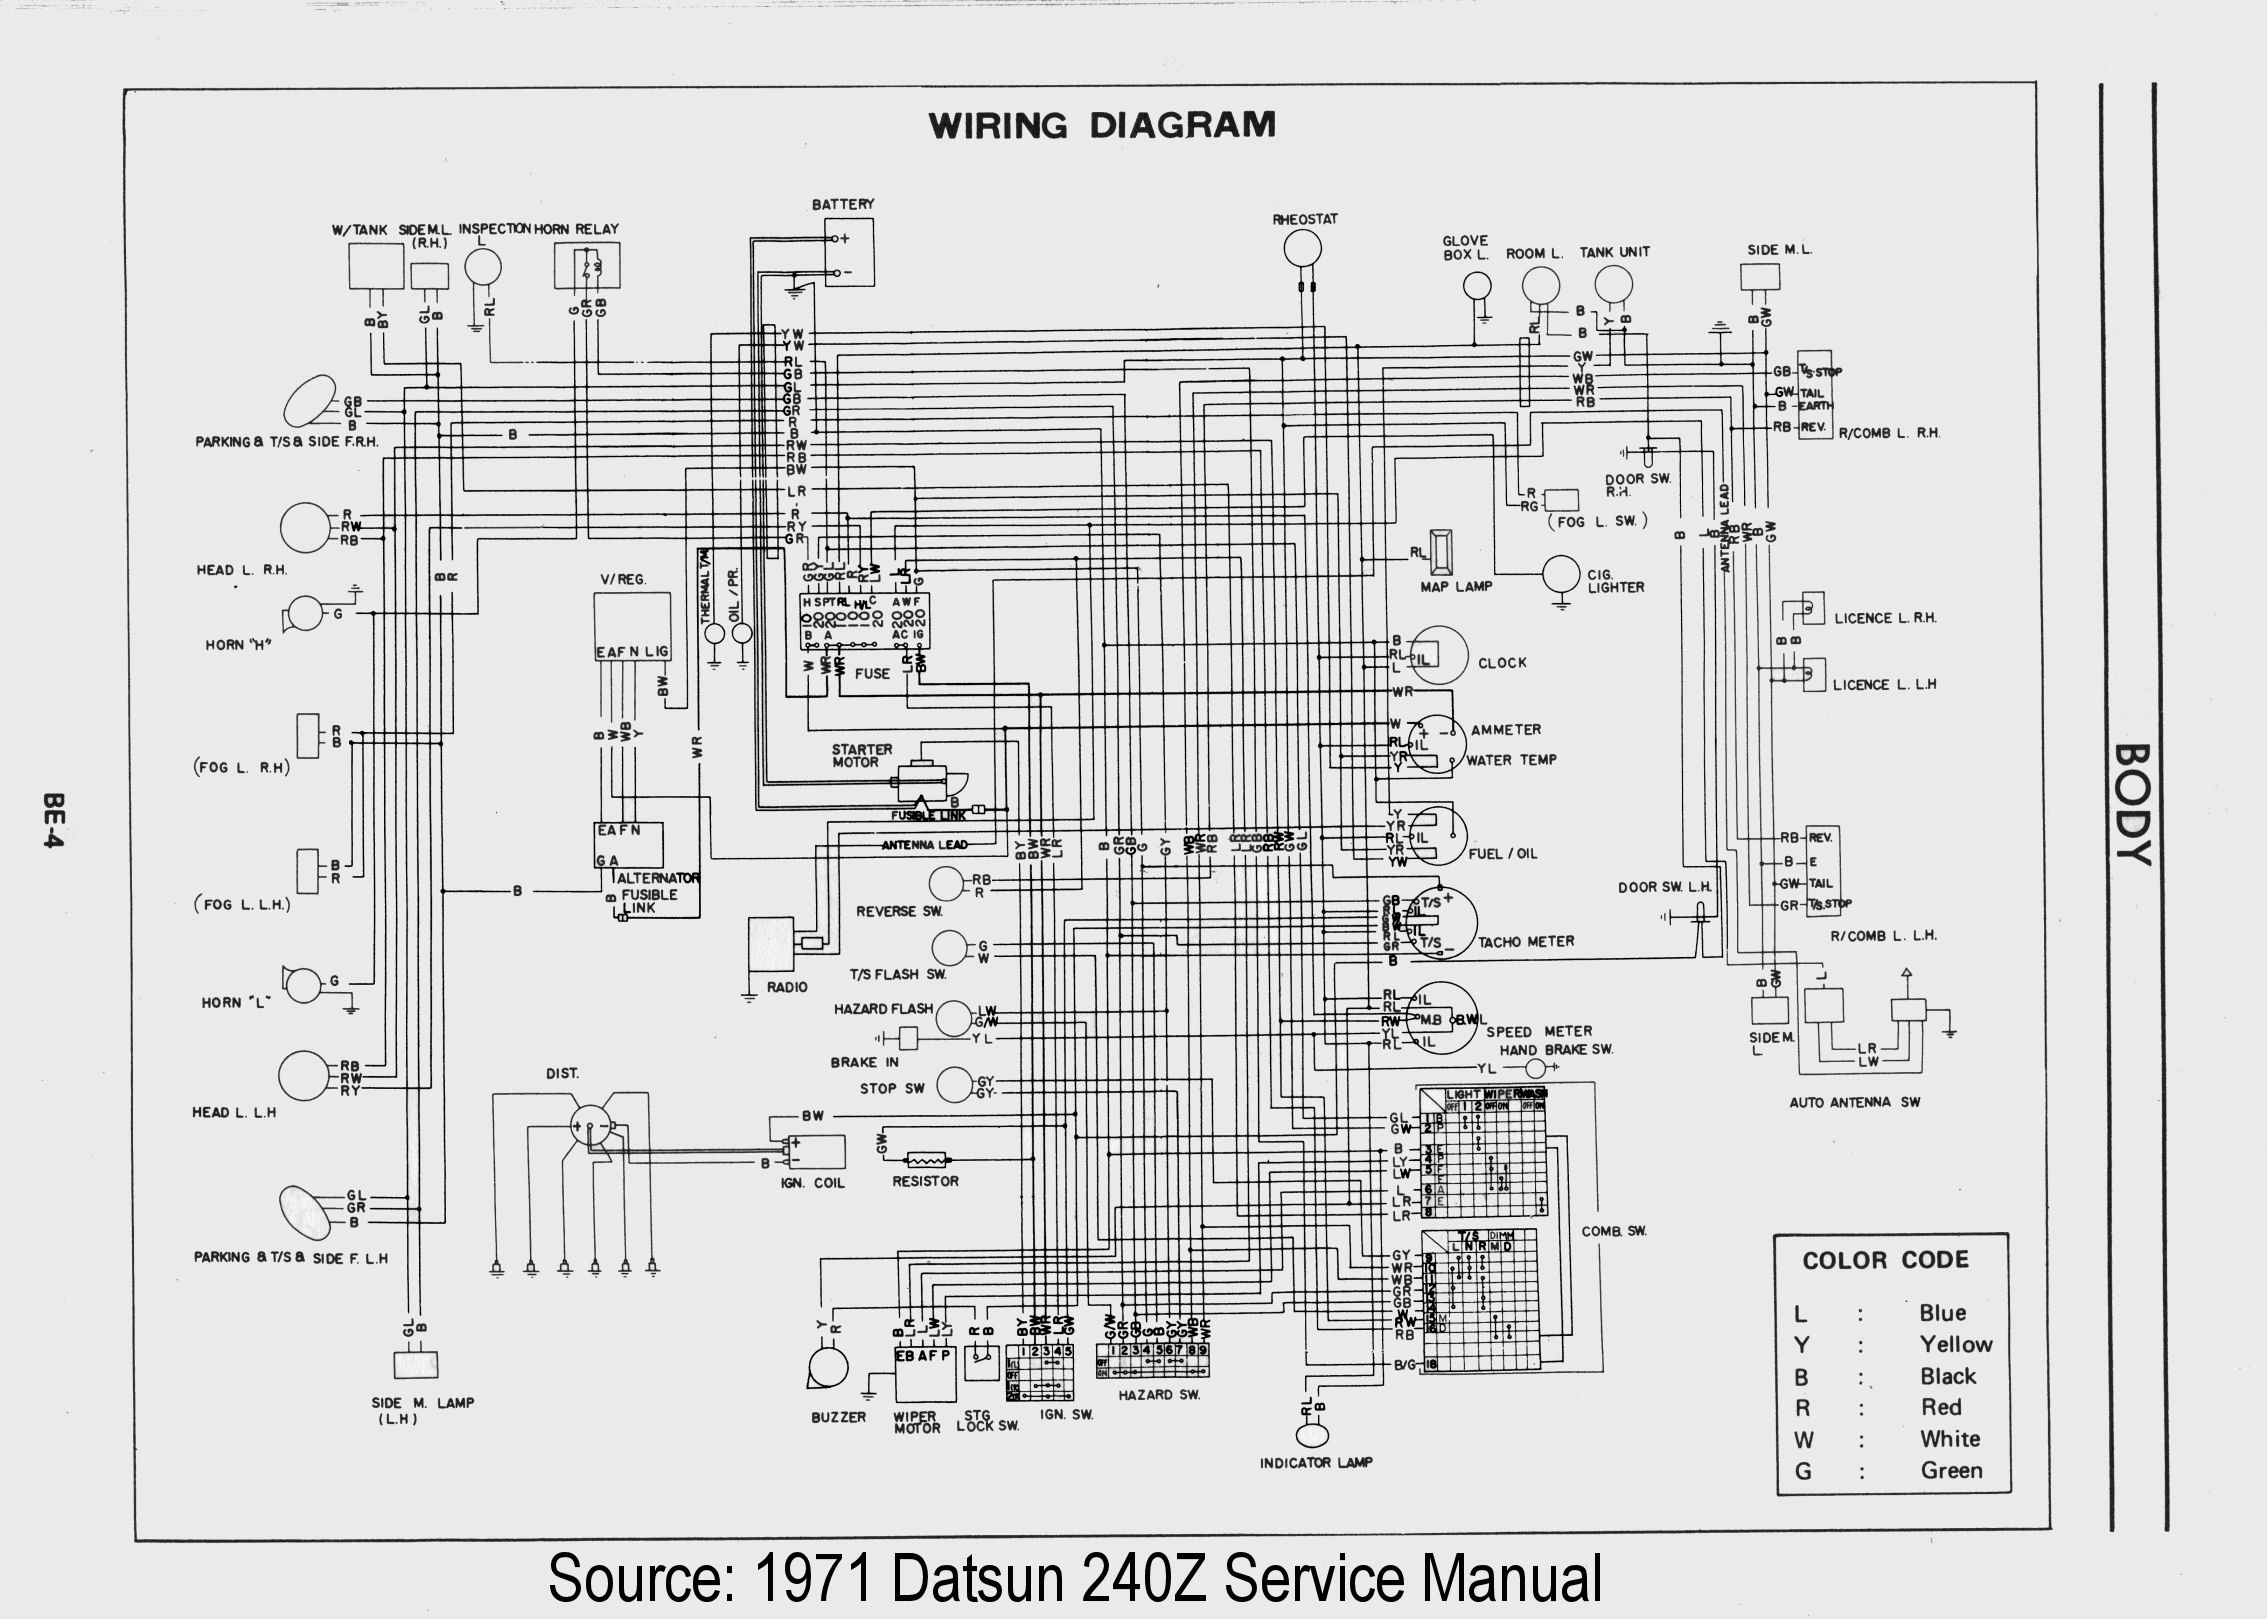 Wiring Diagram HiRes 2 280z wiring diagram 280z tachometer wiring \u2022 wiring diagrams j  at nearapp.co